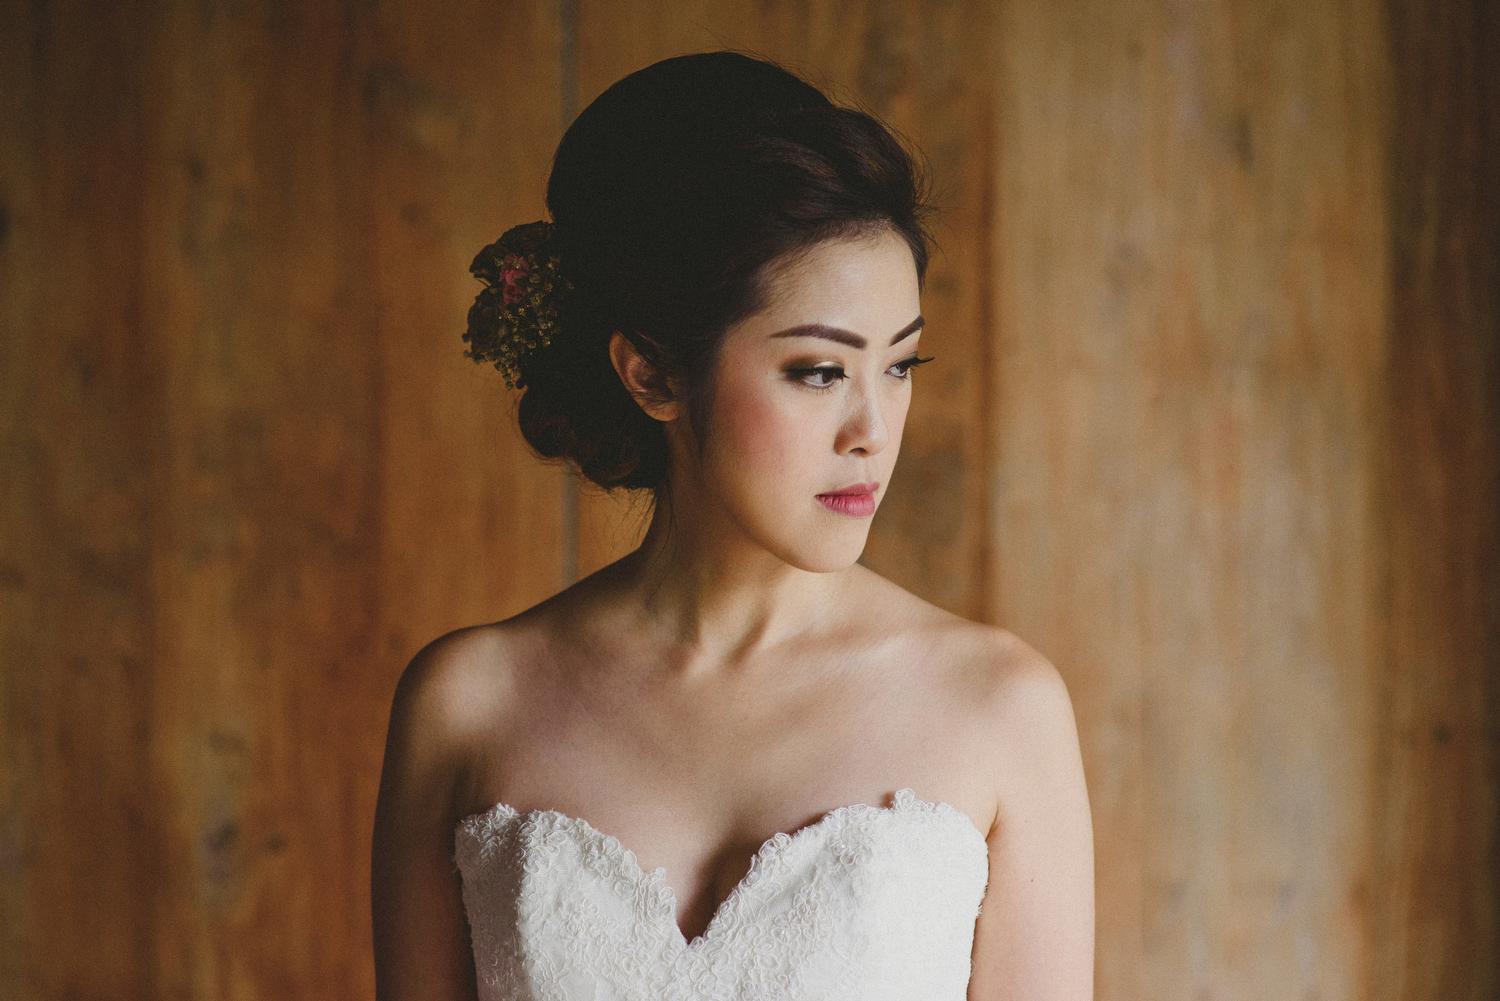 wedding-helise-risky-weddinginbali-khayanganestate-diktatphotography-baliweddingdestination-baliphotographer-40